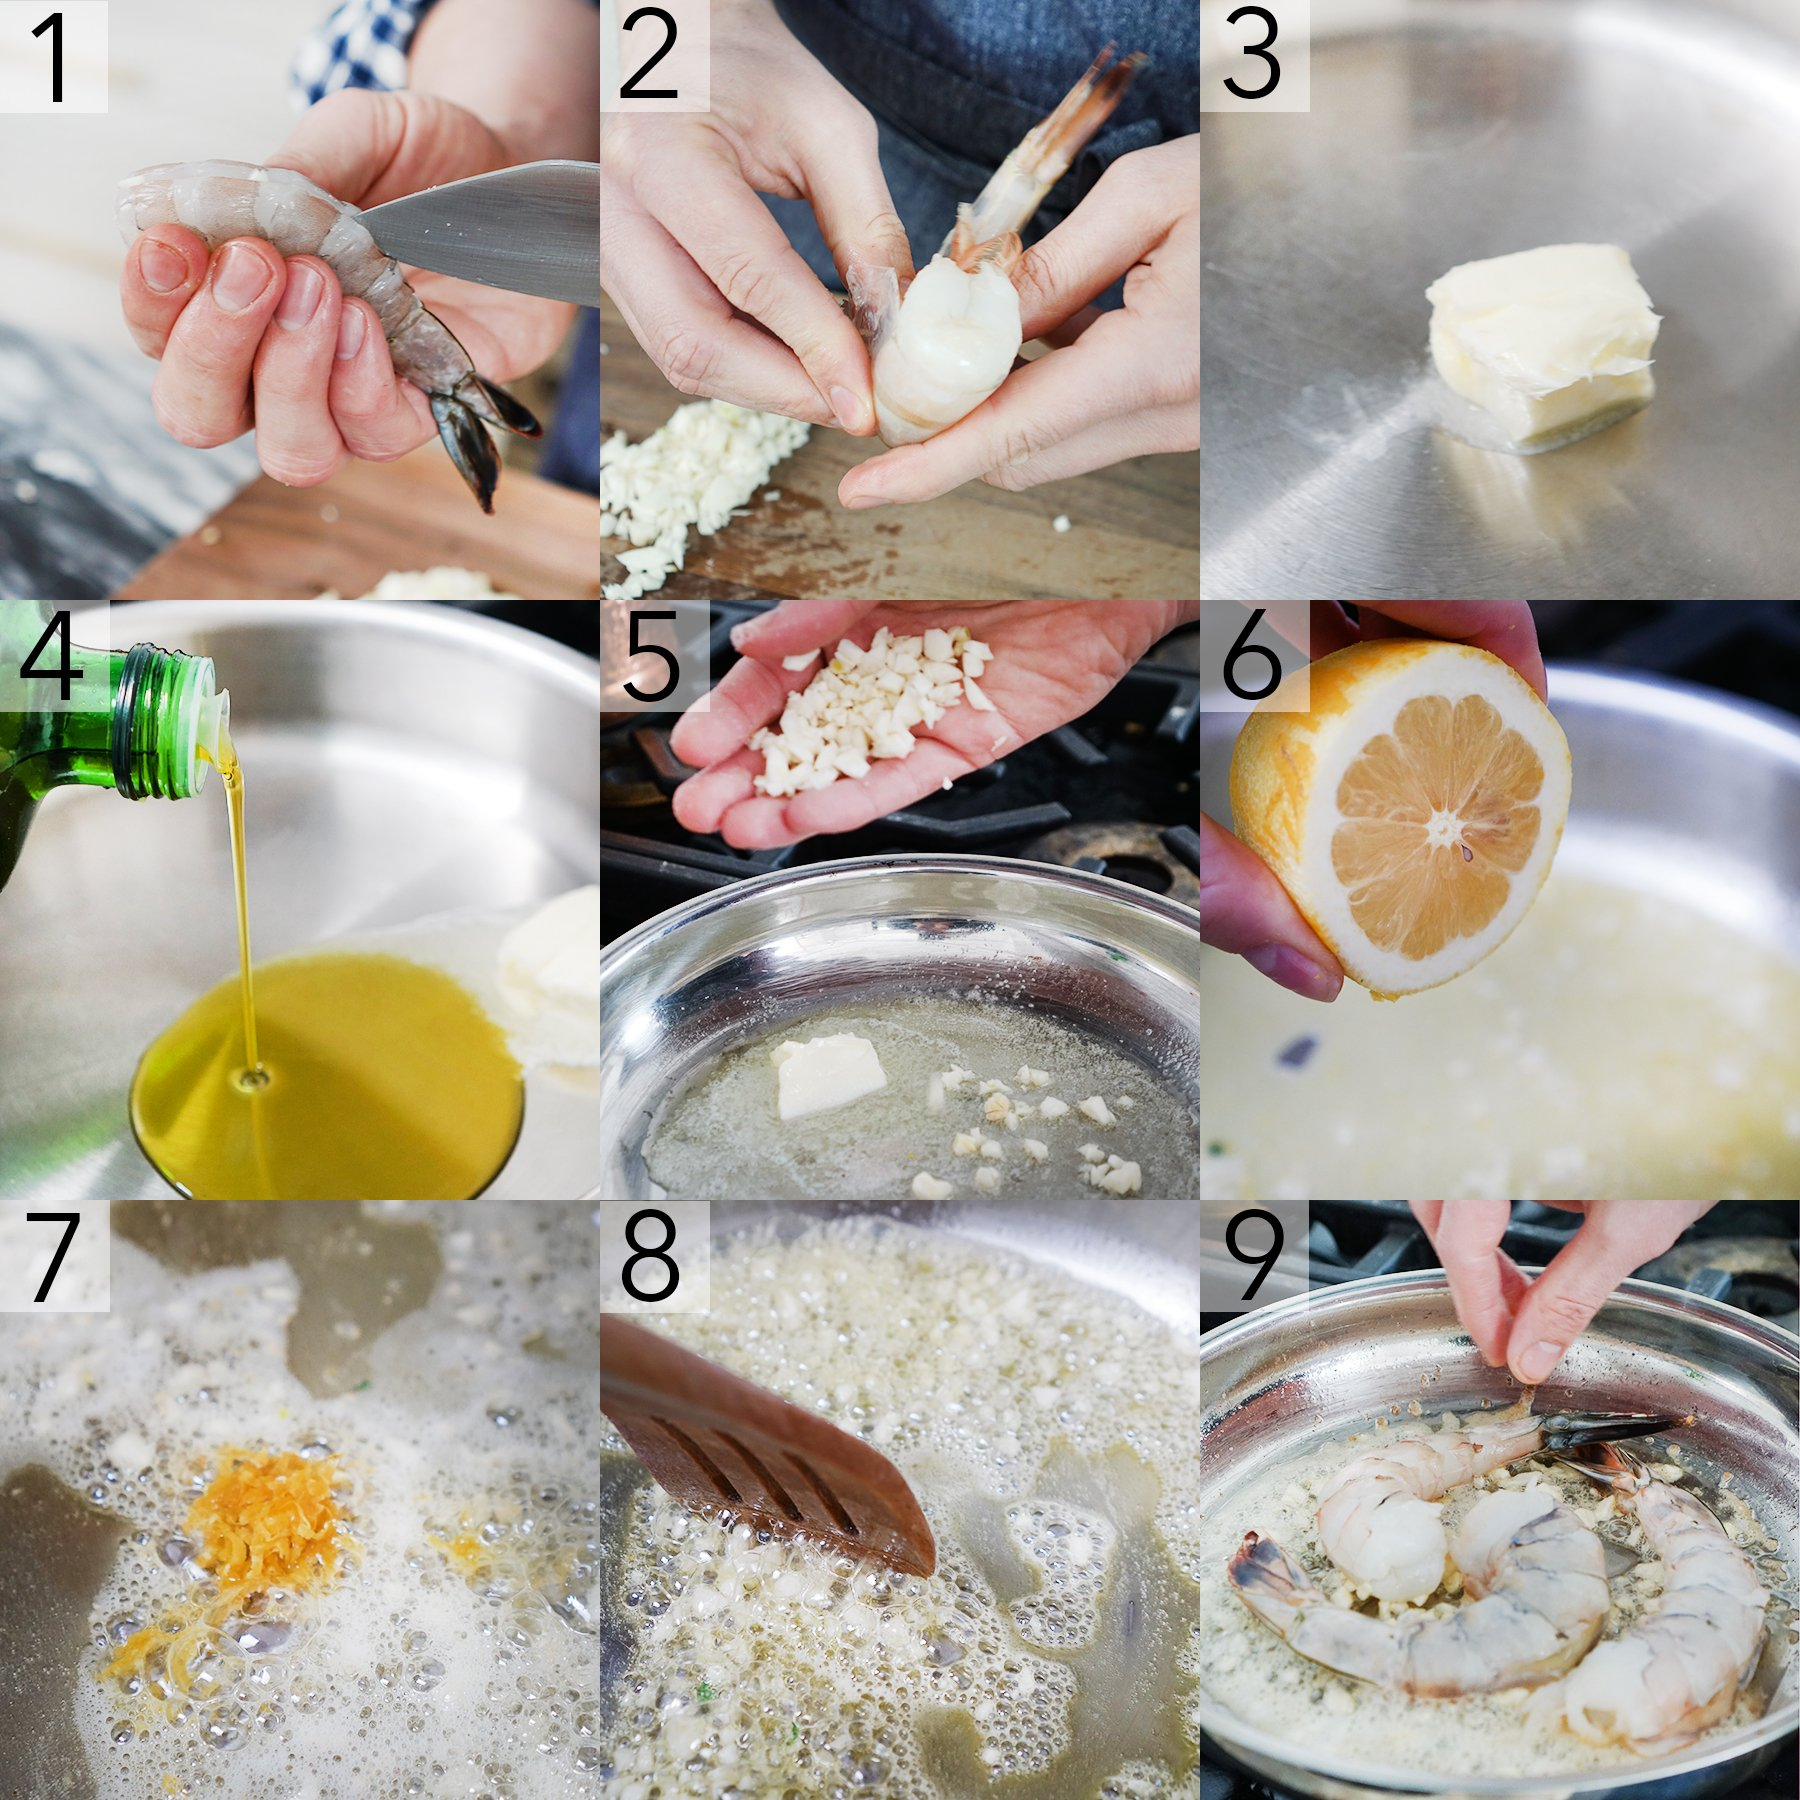 A photo collage showing the steps to make shrimp scampi